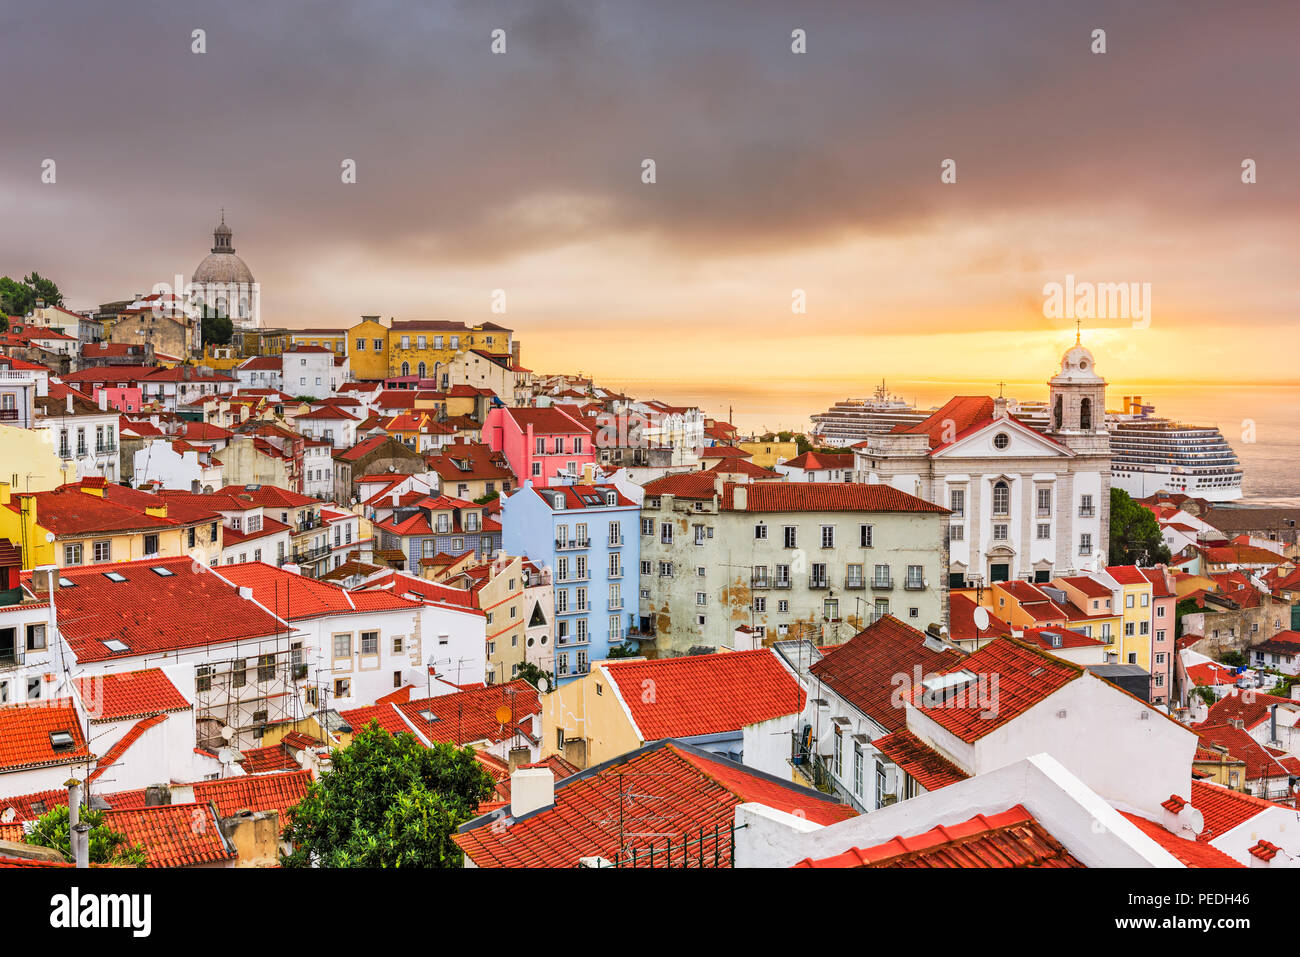 Lisbon, Portugal city skyline over the Alfama district. - Stock Image